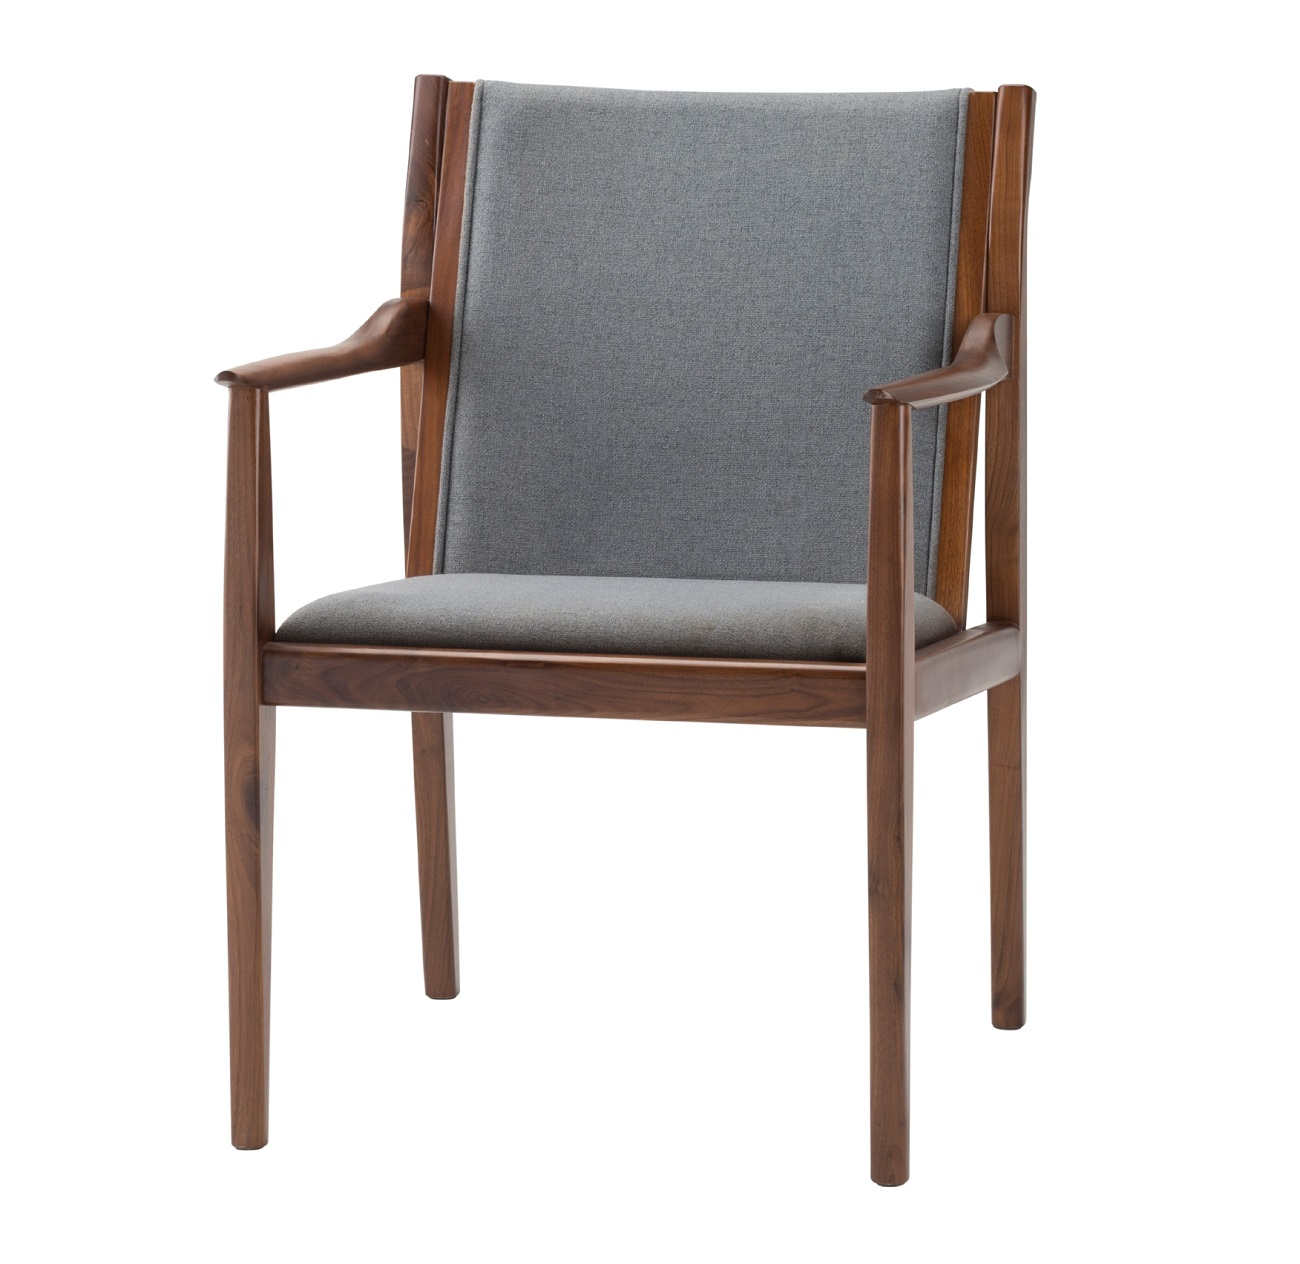 Nuevo Contemporary Chairs for Sale Brooklyn, New York, Furniture by ABD